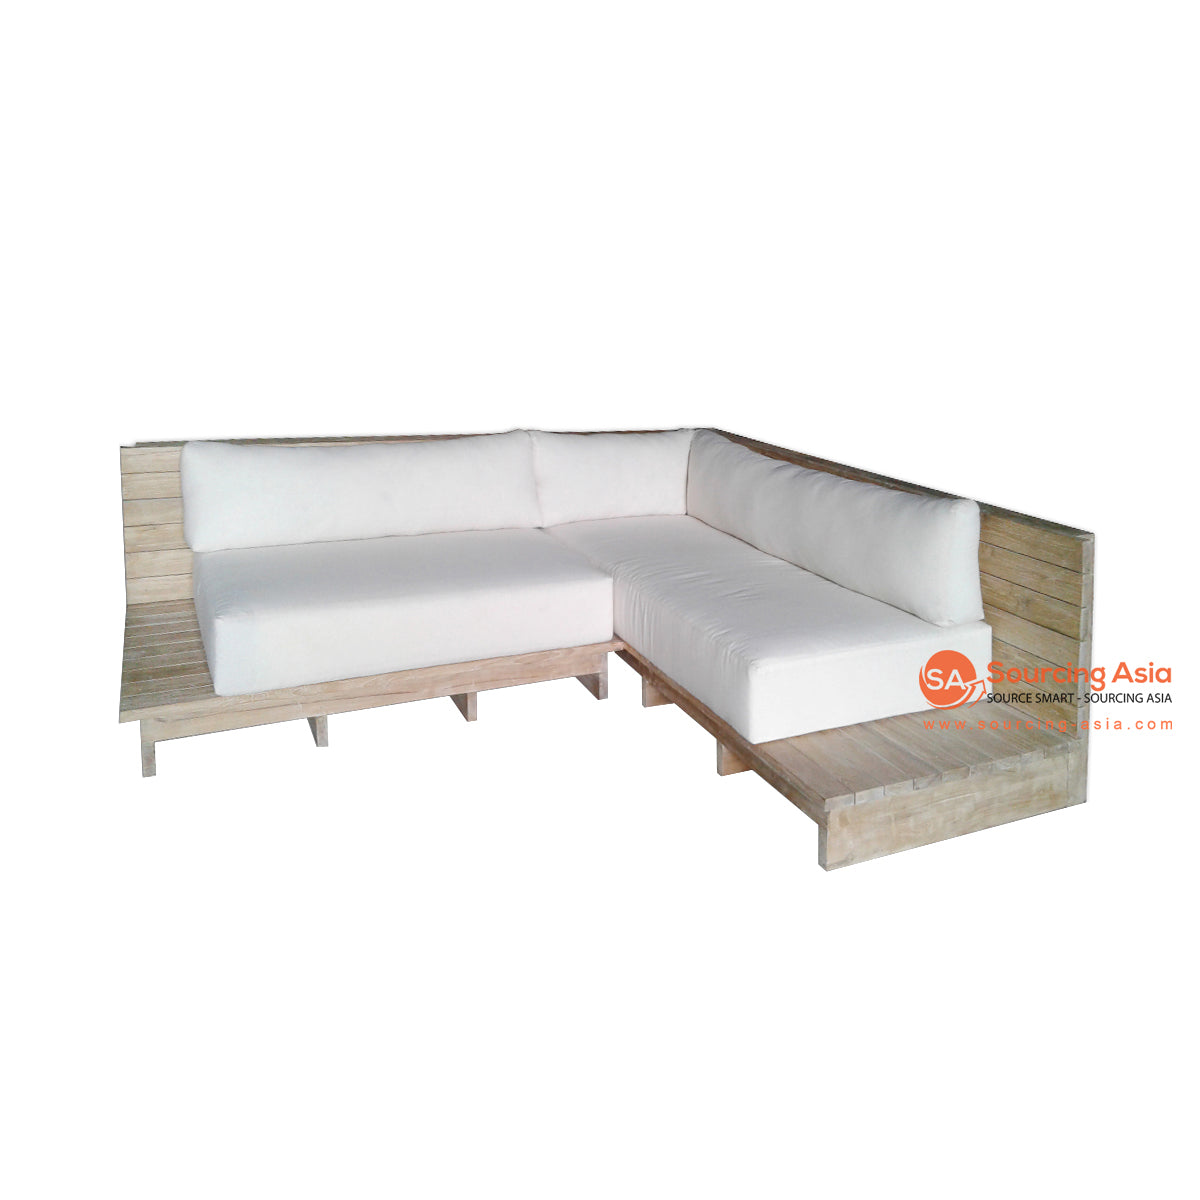 ECL049 NATURAL RECYCLED TEAK WOOD OUTDOOR MALDIVES CORNER LOUNGER SOFA